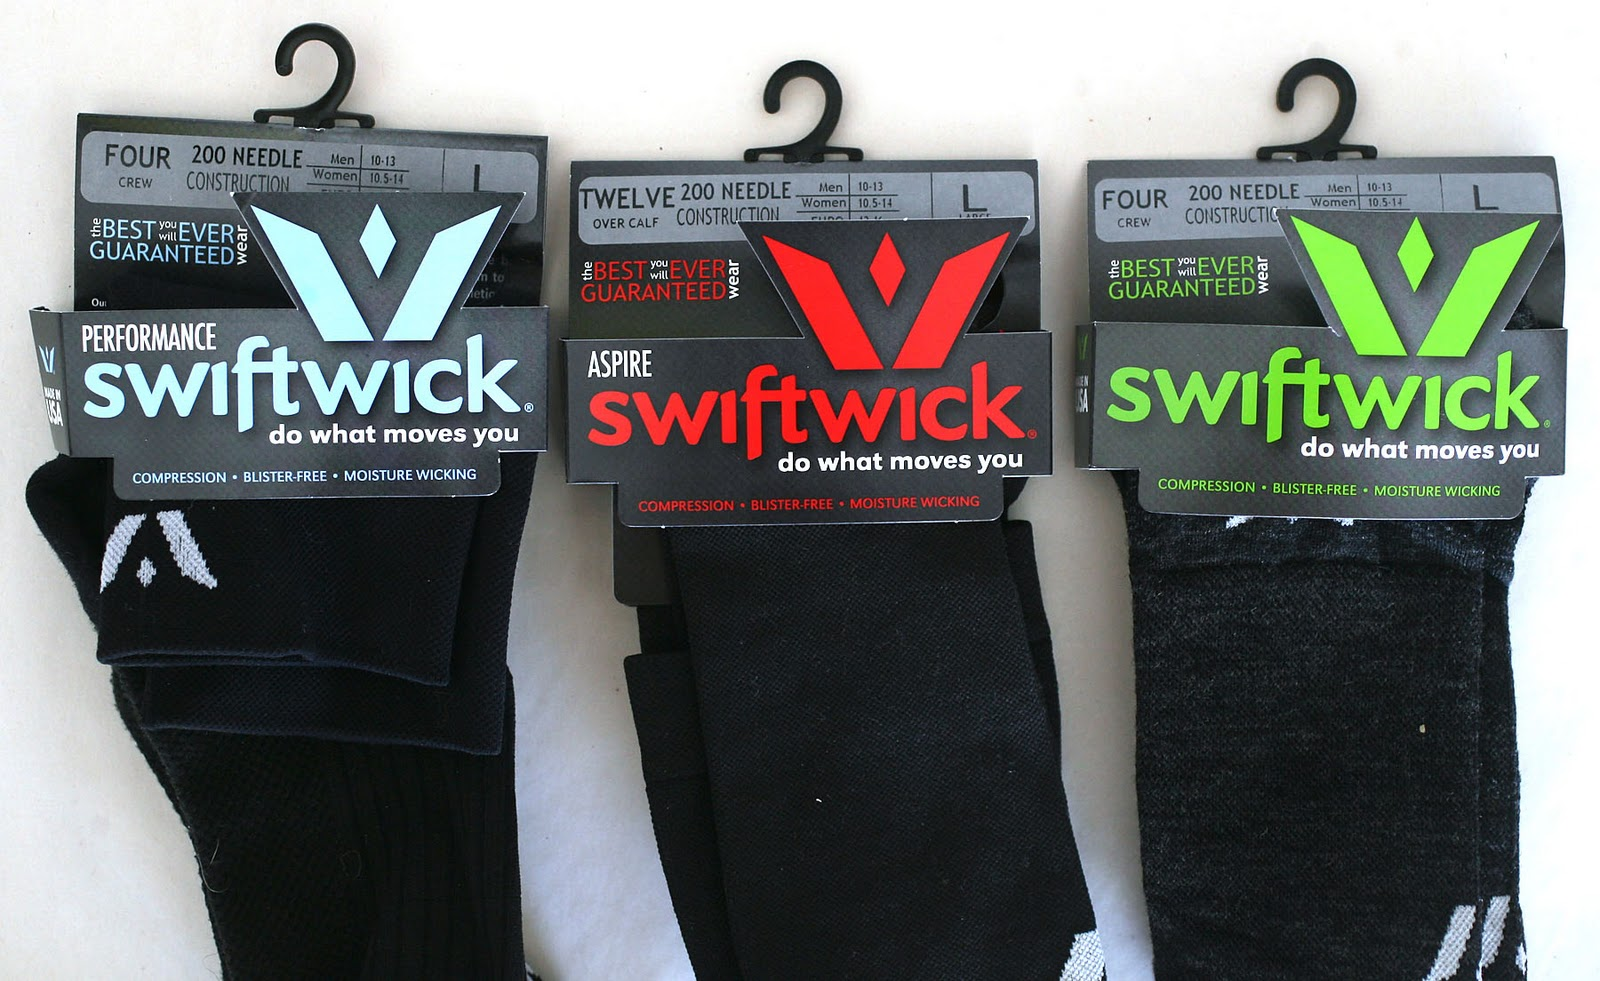 3be9051357 I have worn and tested three pairs of Swiftwick socks over the past two  months, training (running and cycling) and here are my findings.